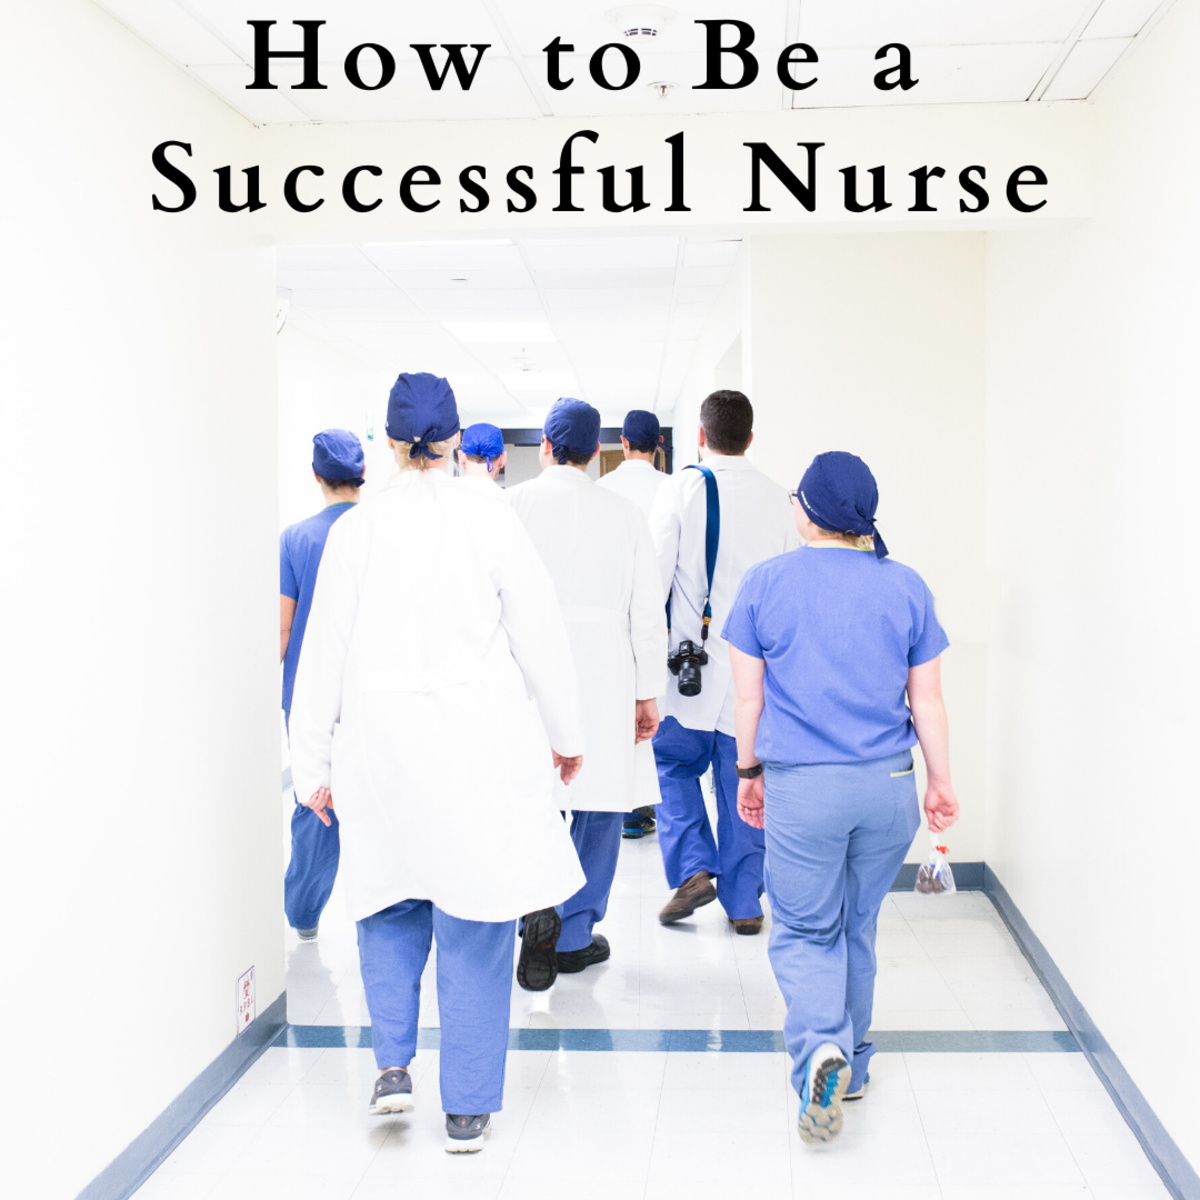 Read on to learn how to become a successful nurse.